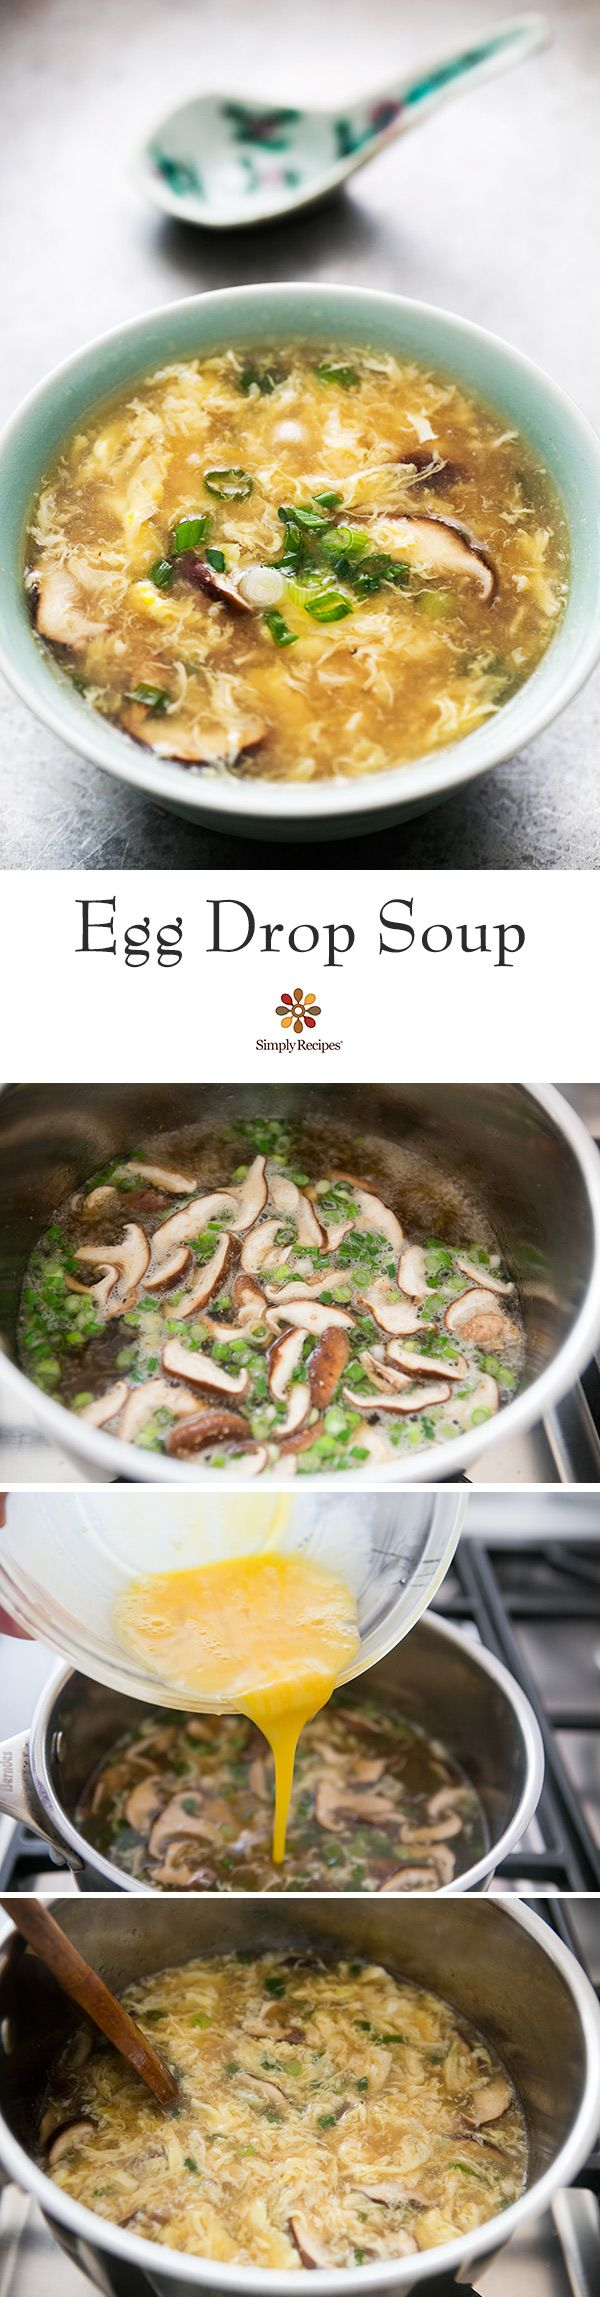 Easy! This classic Chinese egg drop soup comes together in minutes, with just a few simple ingredients—stock, soy sauce, eggs, ginger, green onions, mushrooms. #glutenfree #lowcarb On SimplyRecipes.com